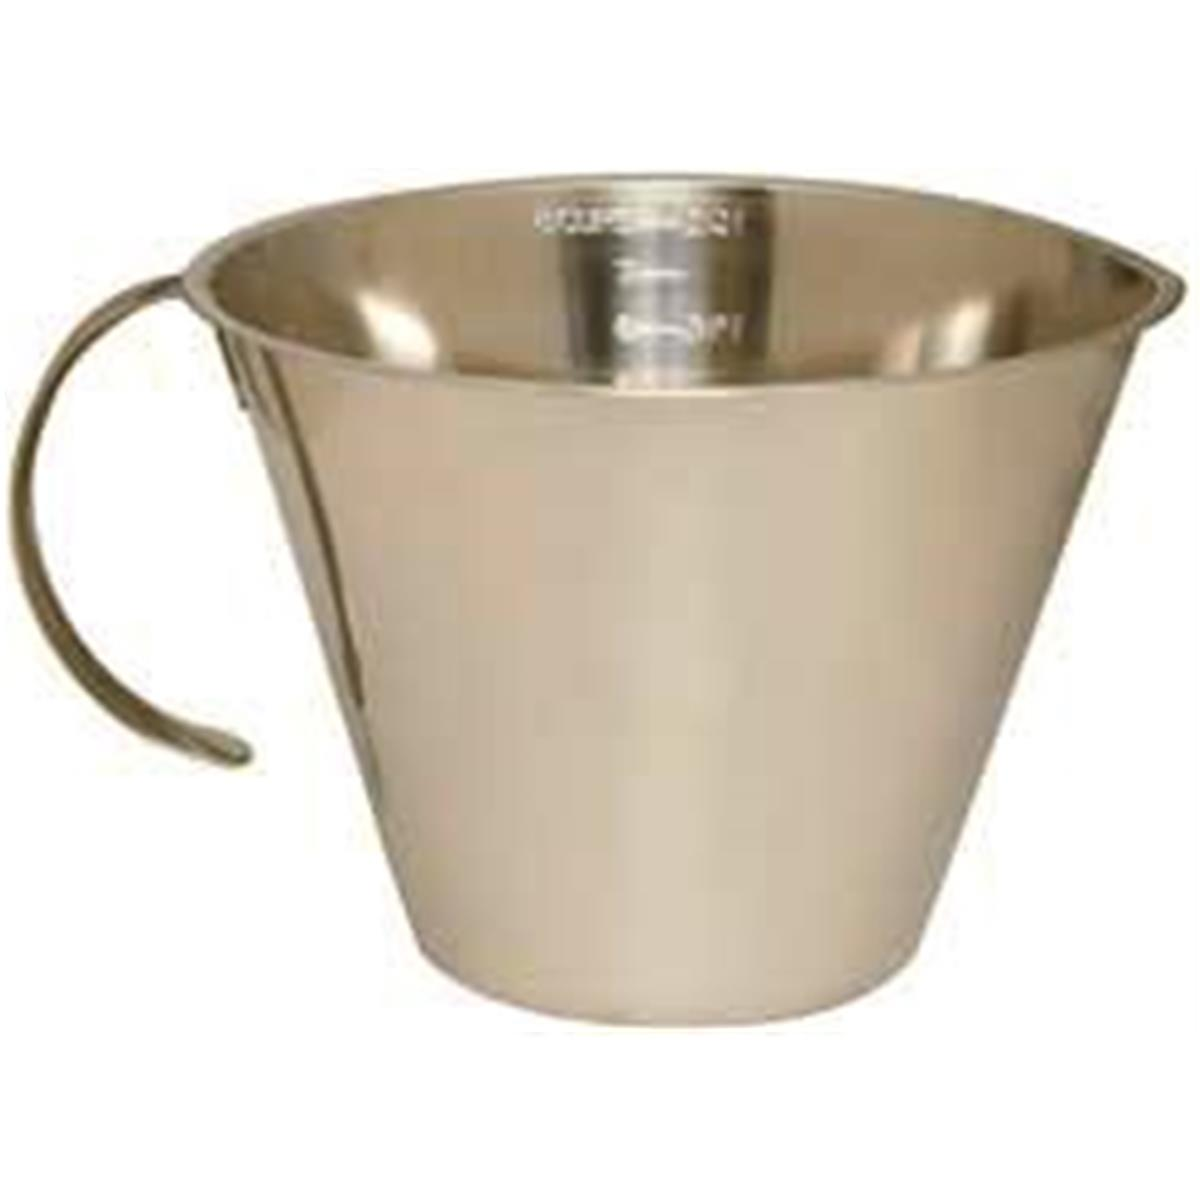 1200x1200 8 Cup Stainless Steel Measuring Cup Gempler'S